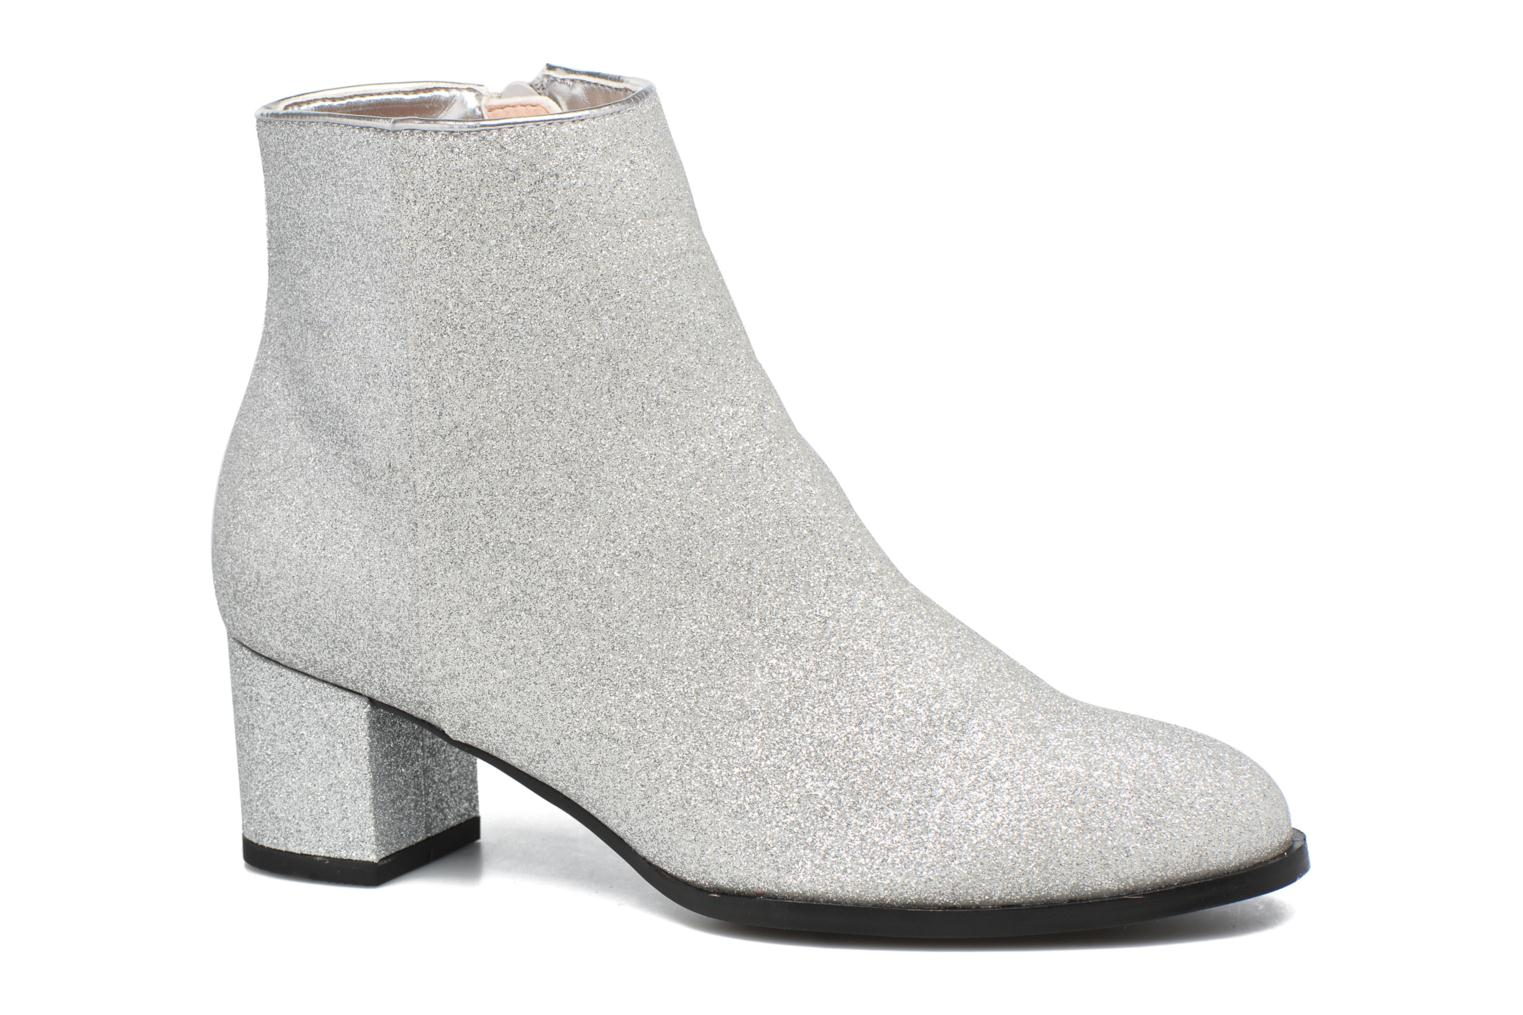 Marques Chaussure femme Mellow Yellow femme Cagliglita Argent Glitter silver